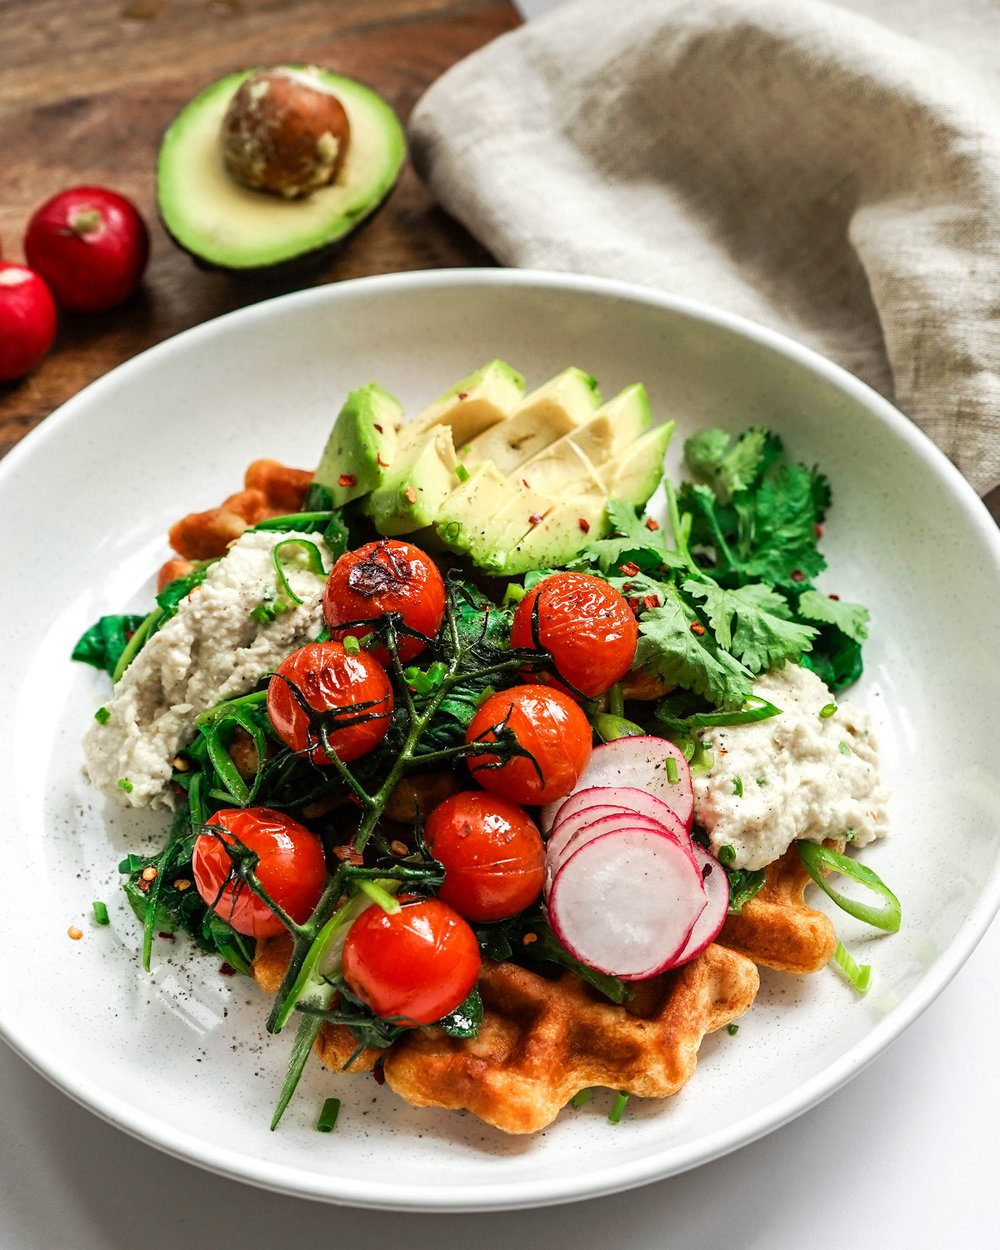 Vegan Sweet Potato Waffles - also perfet toasted the next day!